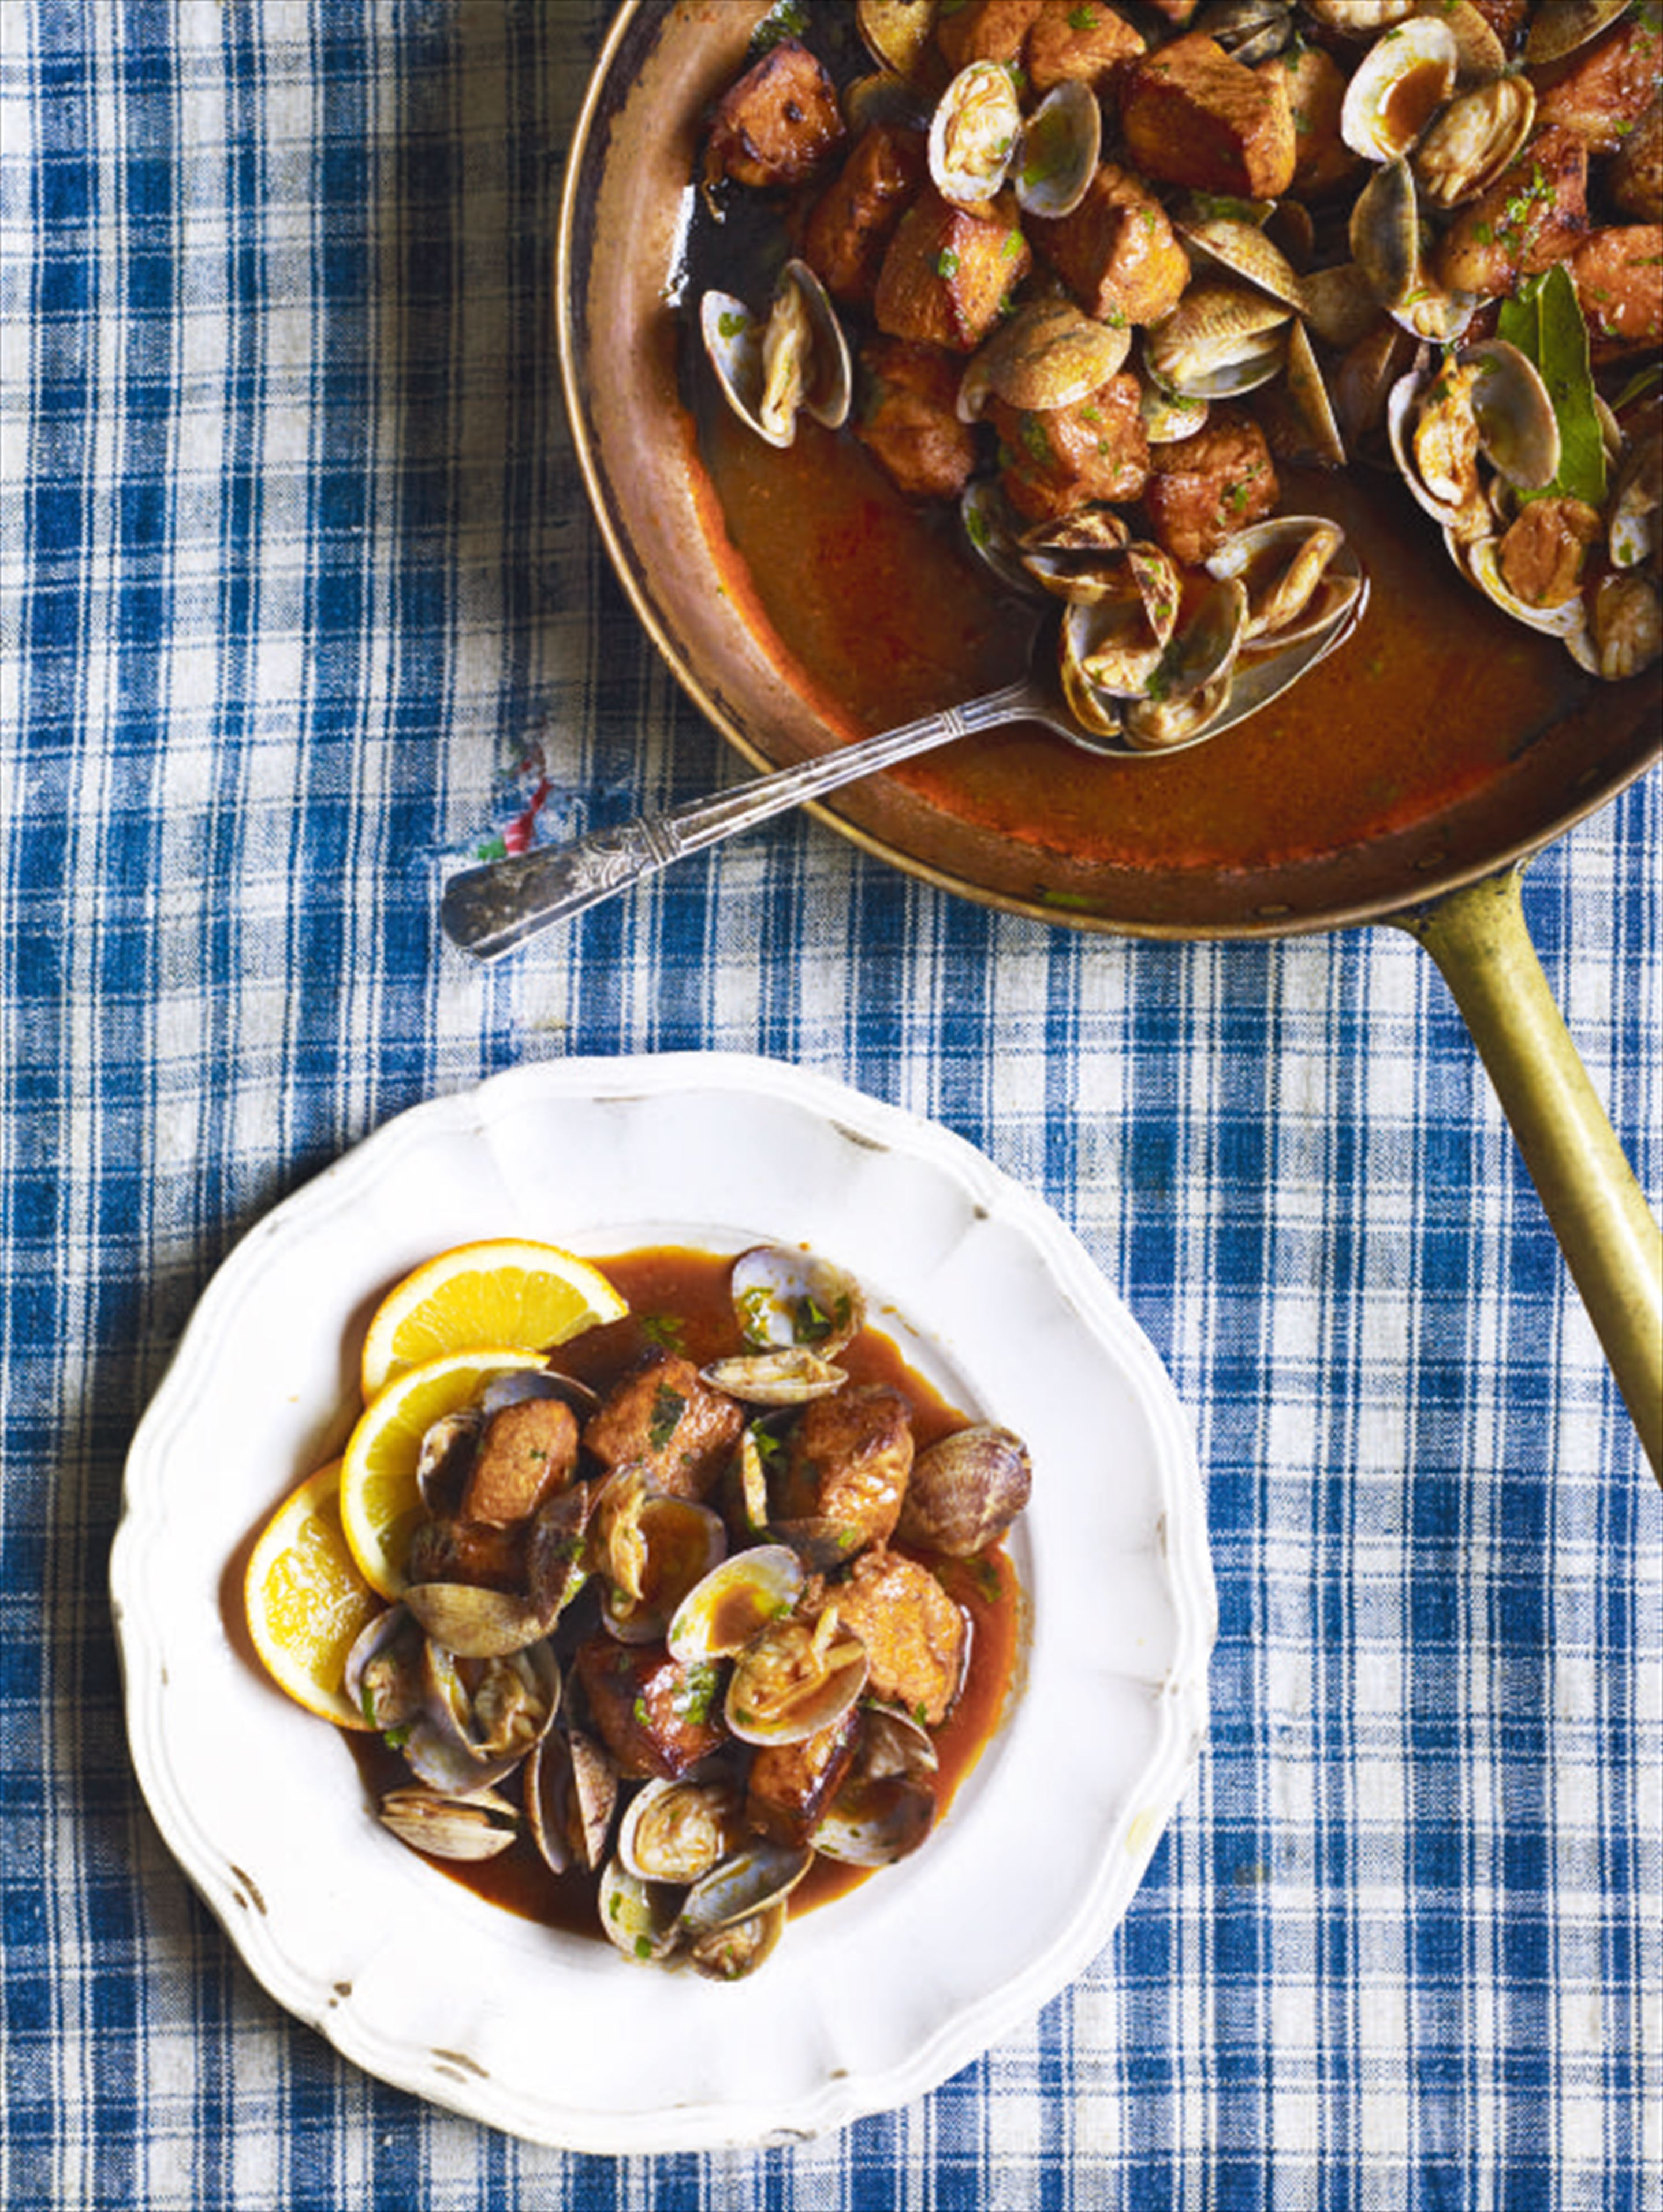 Alentejo-style pork and clams